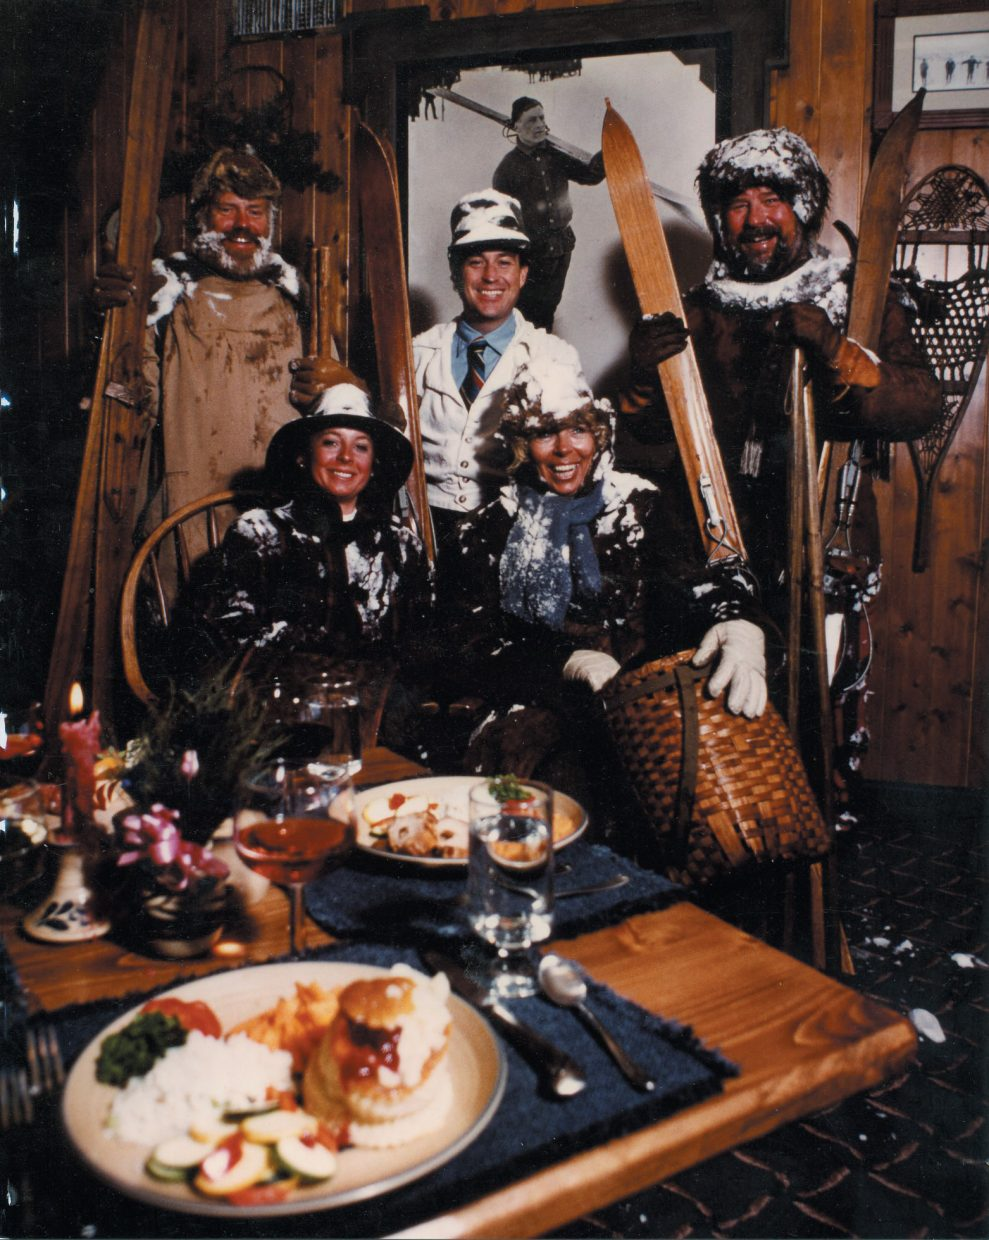 Wayne Kakela (top right) celebrates the completion of Ragnar's with friends near the mountain restaurant's opening in 1984. The group skied down the mountain on the skis they're holding in the photo.